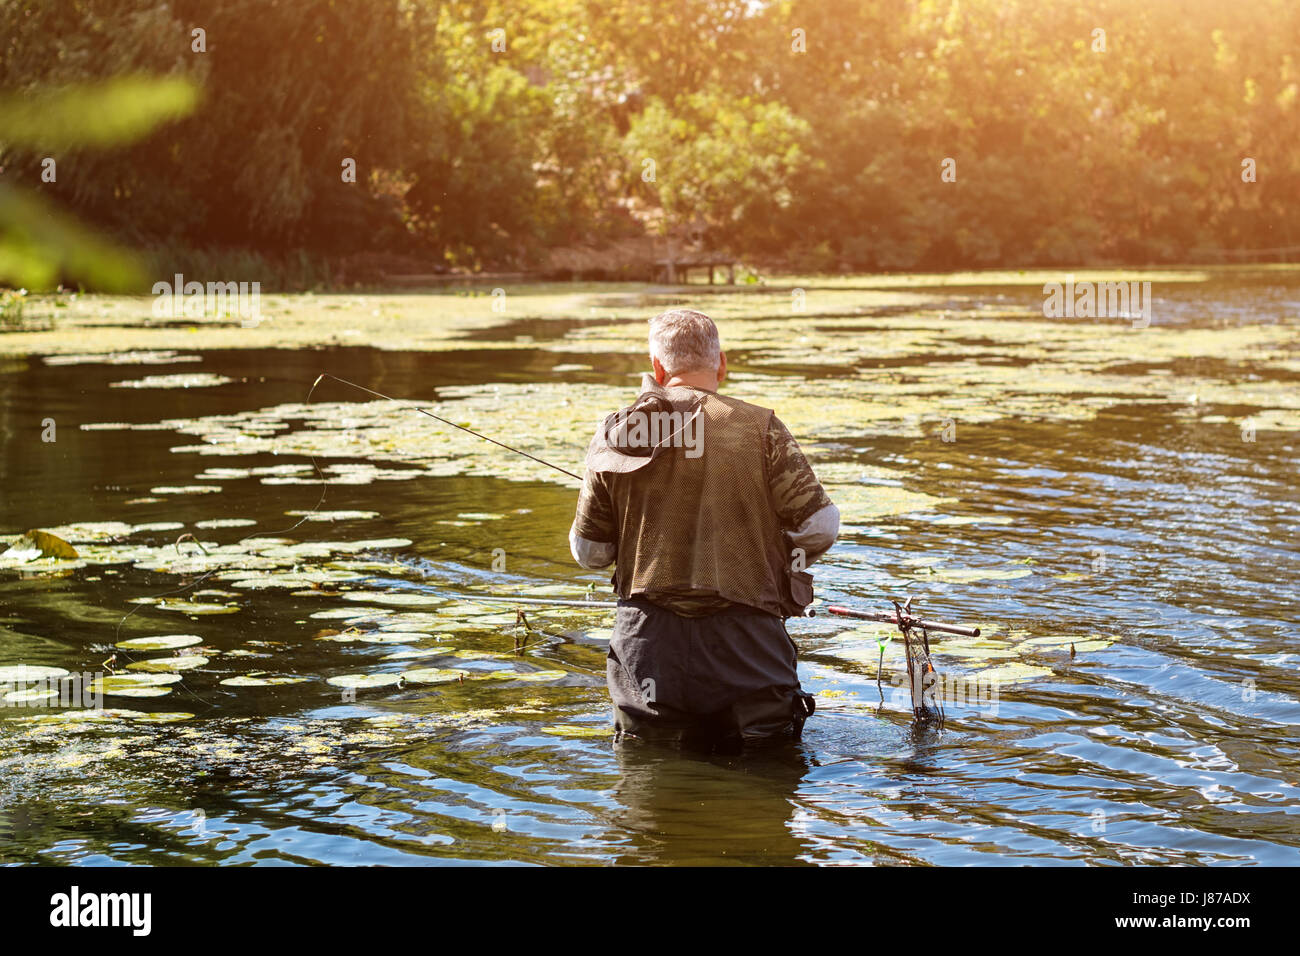 Old fisherman fishing in a lake or river with a fishing rod on a sunny day.  Man standing in the water Stock Photo - Alamy